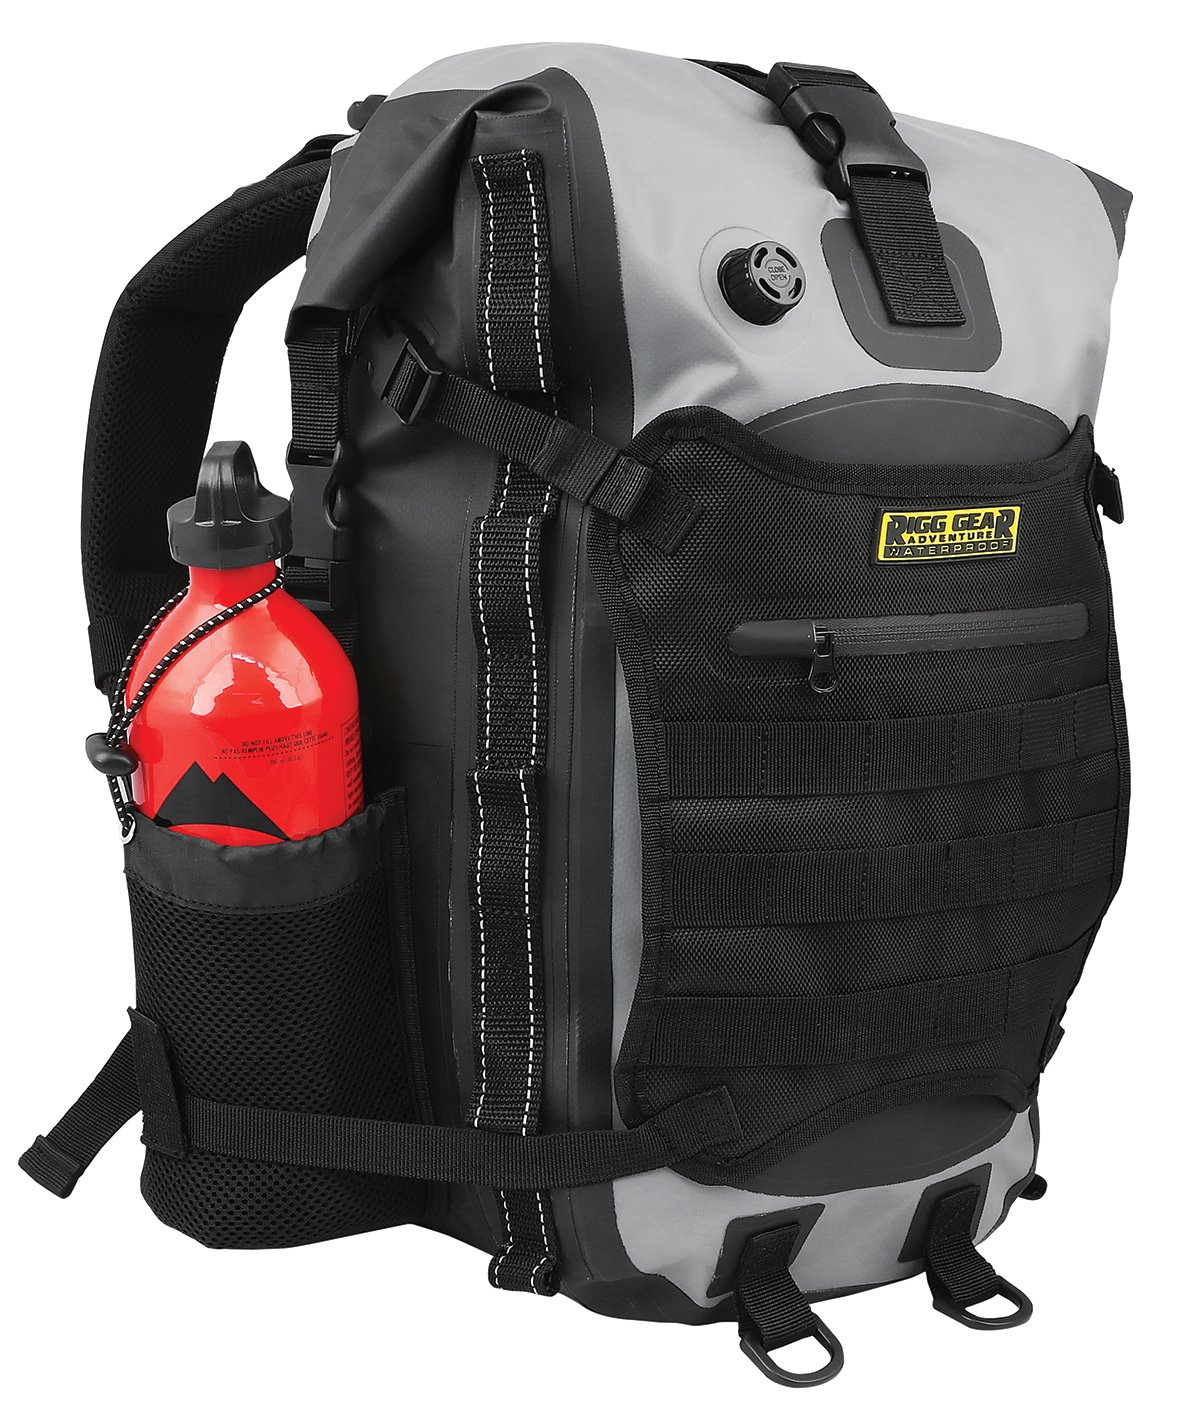 Nelson-Rigg SE-3020 Hurricane Waterproof Backpack 20 Liters Can Mount to Motorcycle, Boat, or Snowmobile. Padded Straps, Reflective Webbing, and Inner Laptop Sleeve and Bottle Holders Nelson Rigg